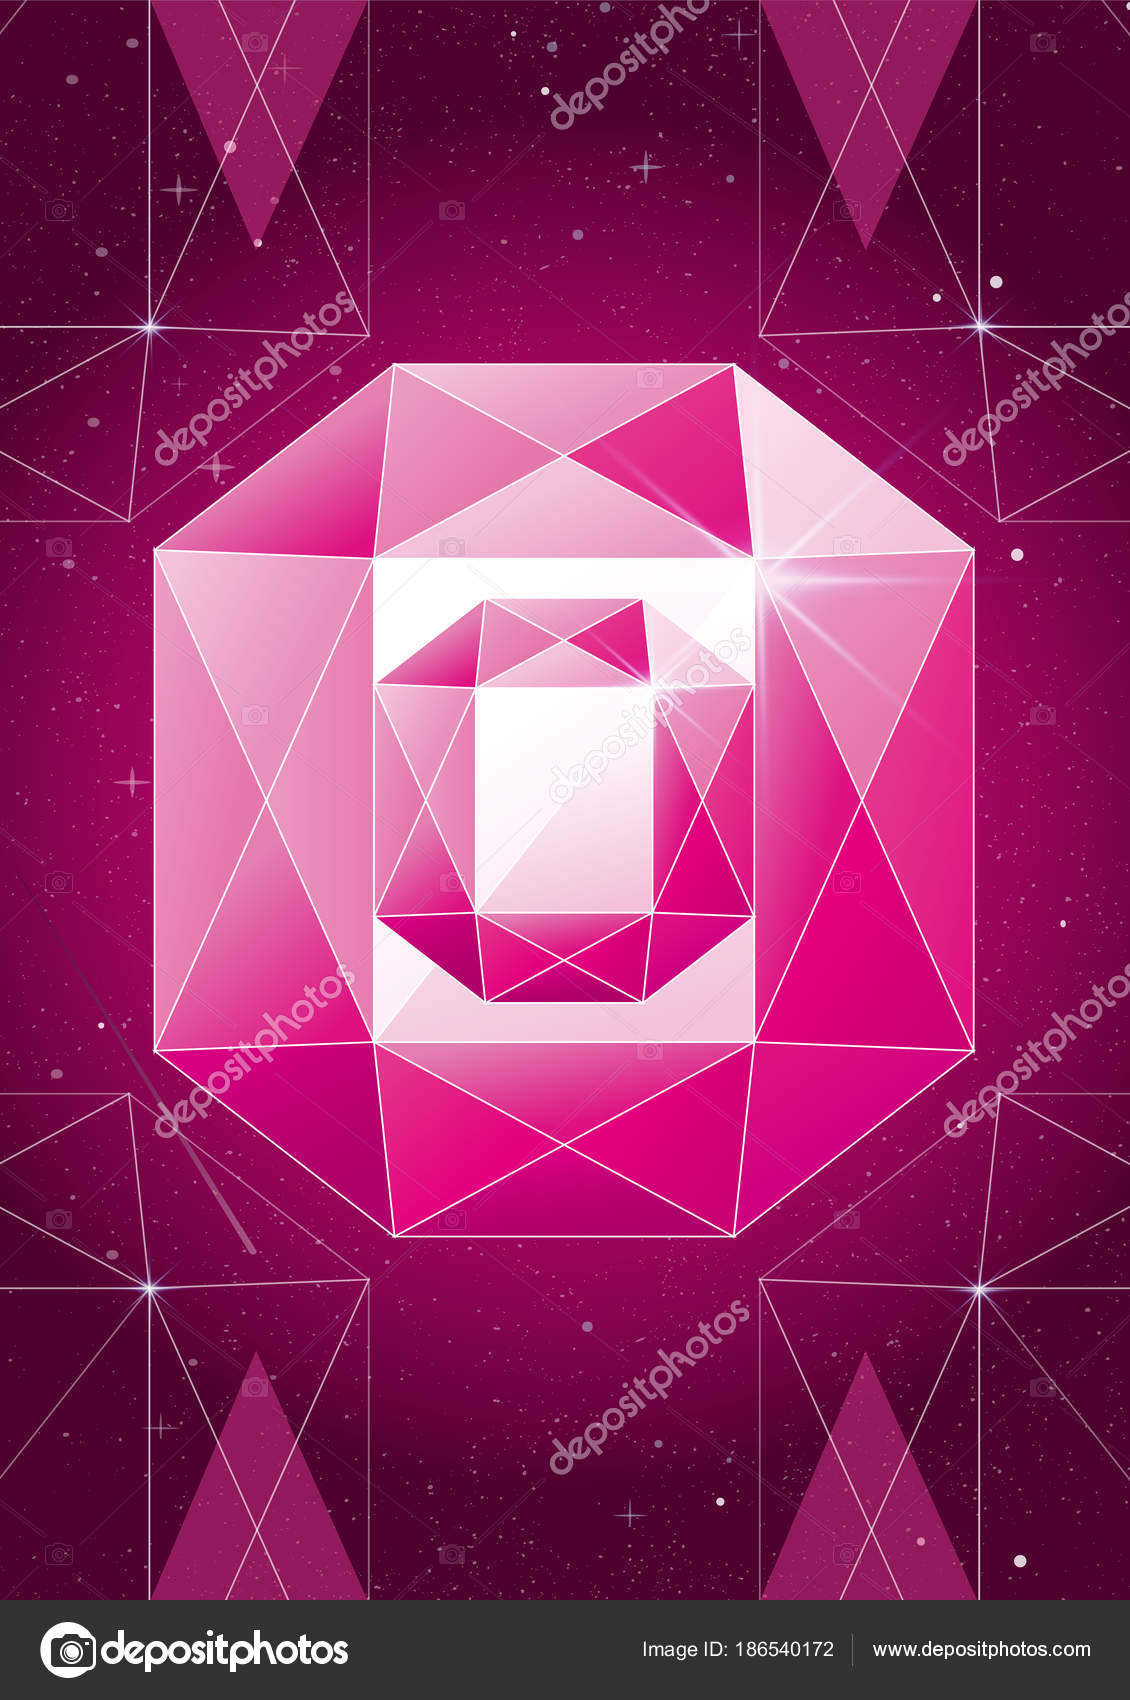 tag diamond ipad com wallpaper iphone ilikewallpaper wallpapers polygon one dark abstract sparkle honorable air diamonds